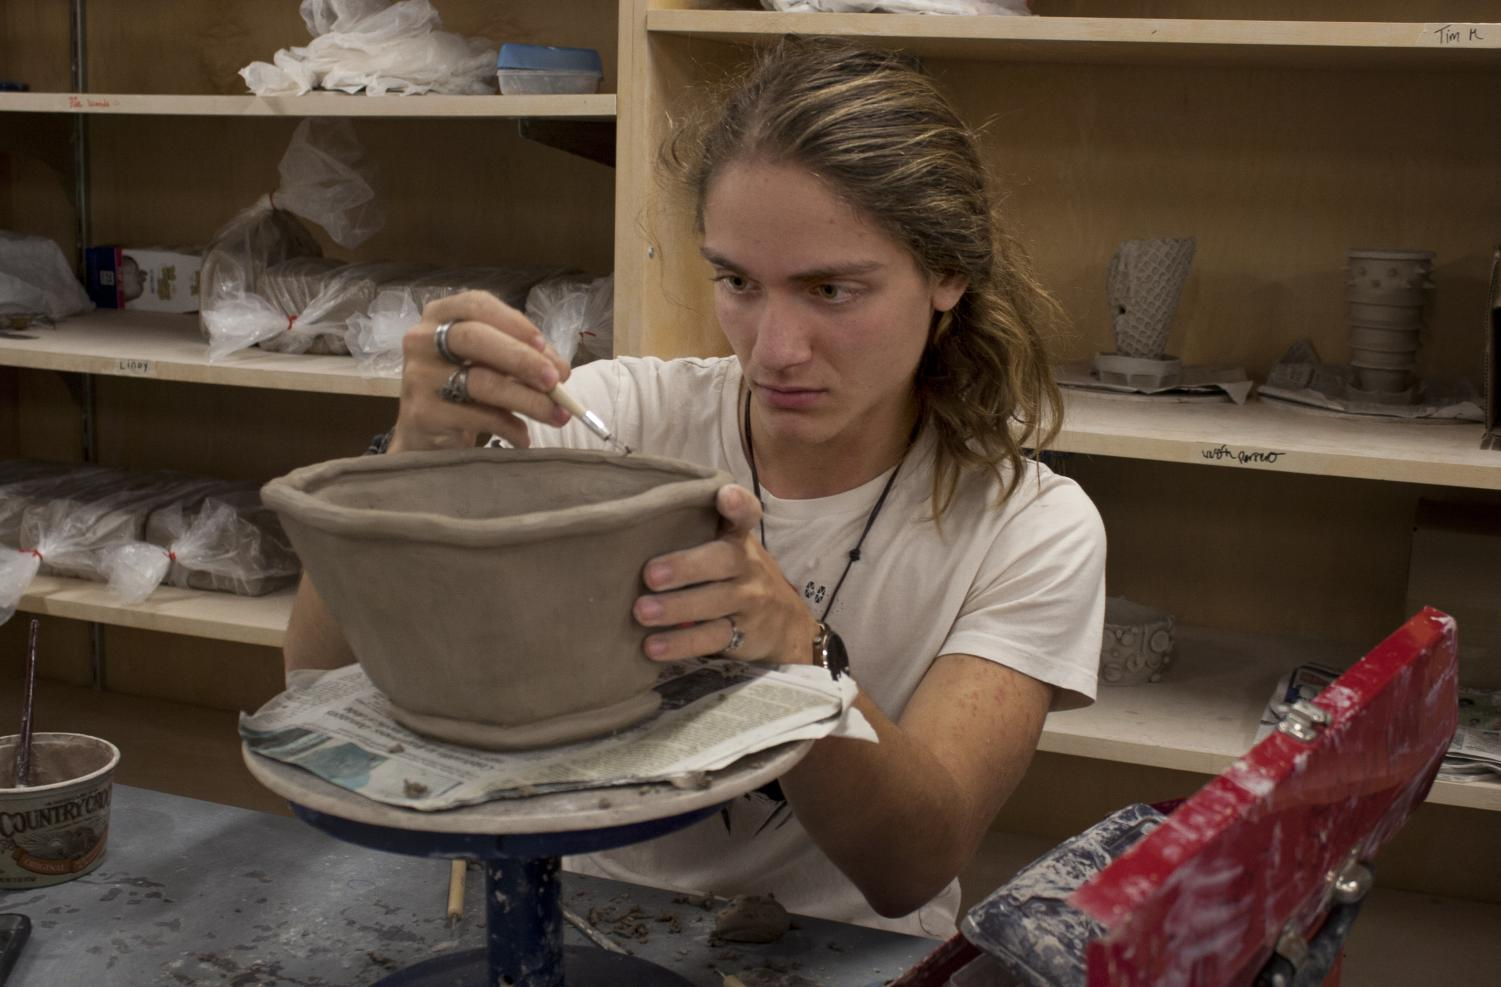 Westin Perrero, a sophomore art education major, works on his pottery project while his other projects dry on the shelves in the Doudna Fine Arts Center Sunday afternoon. Perrero said his favorite part about taking art classes at Eastern is the connection between the teachers and students.